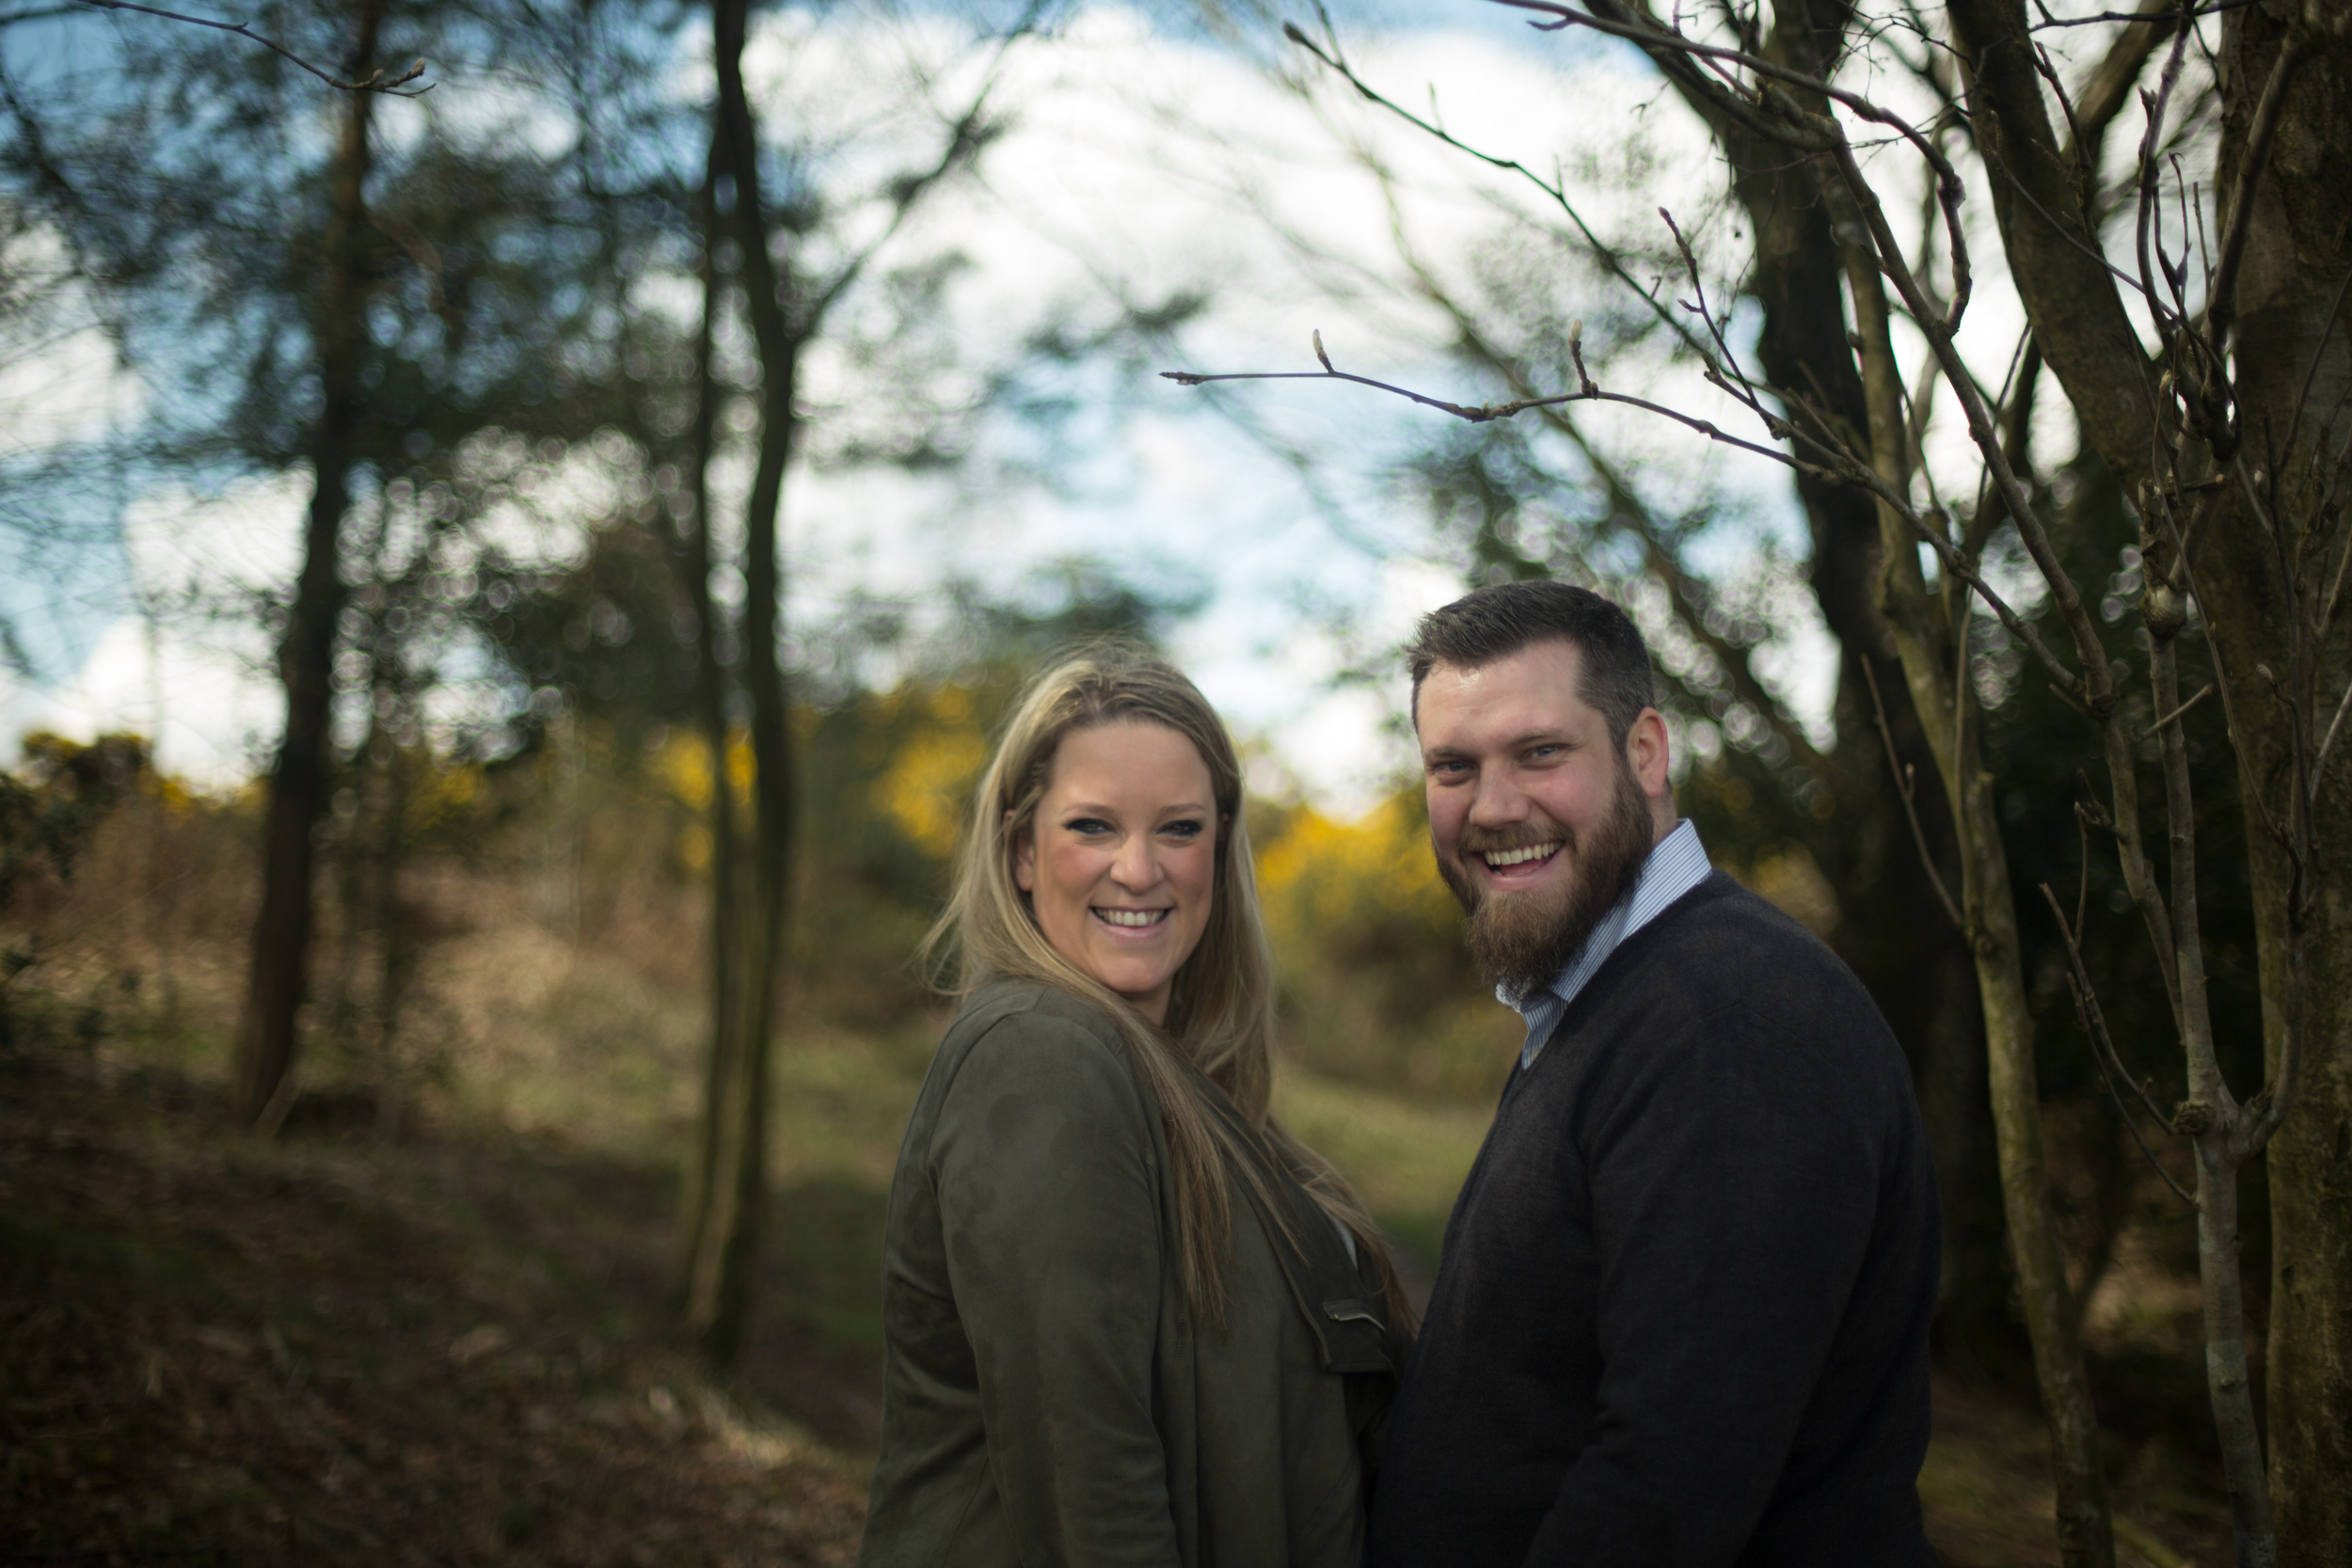 Ashdown-Forest-Pooh-Corner-Sussex-Engagement-Photography-5